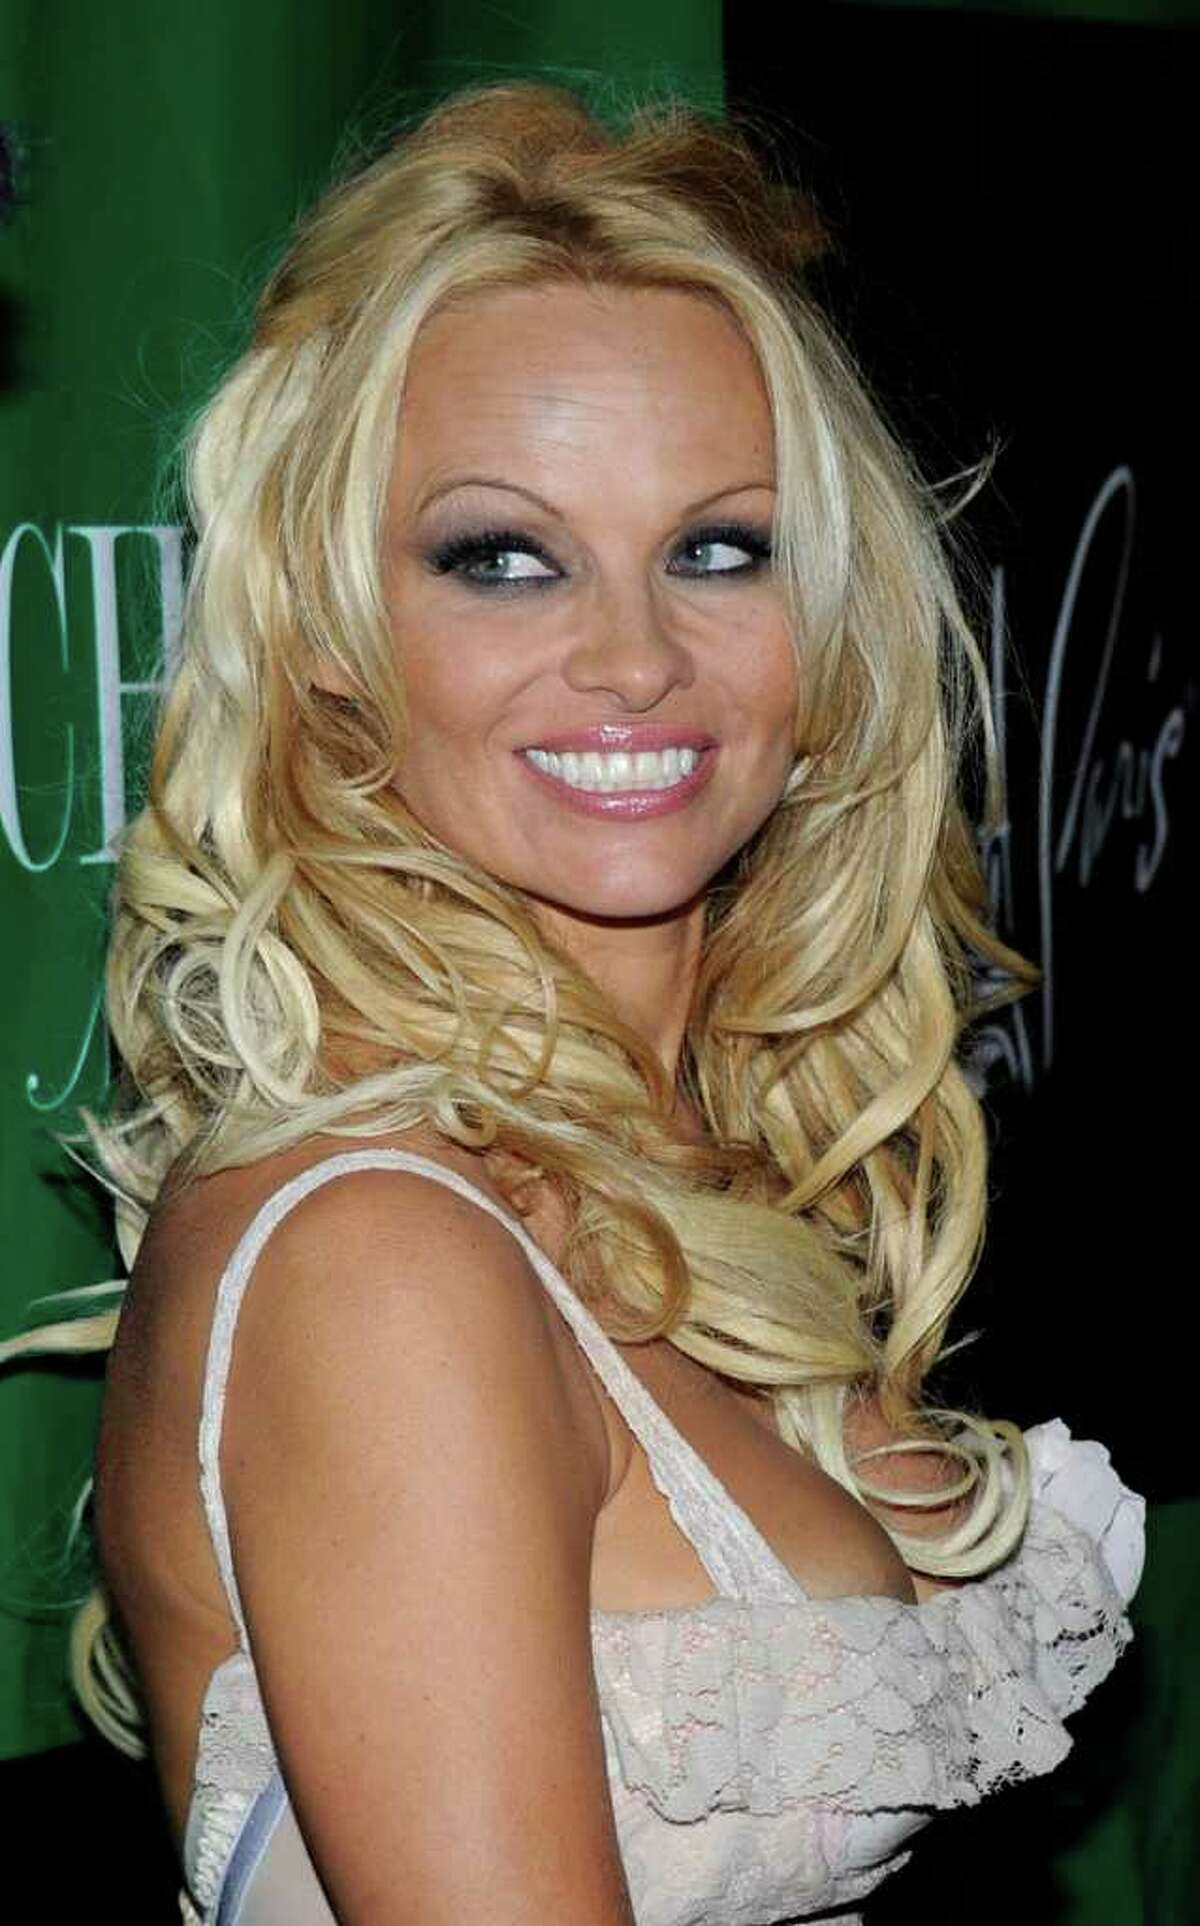 Actress Pamela Anderson arrives at the Chateau Nightclub & Gardens at the Paris Las Vegas to celebrate her birthday in Las Vegas, Nevada. Anderson turned 44.